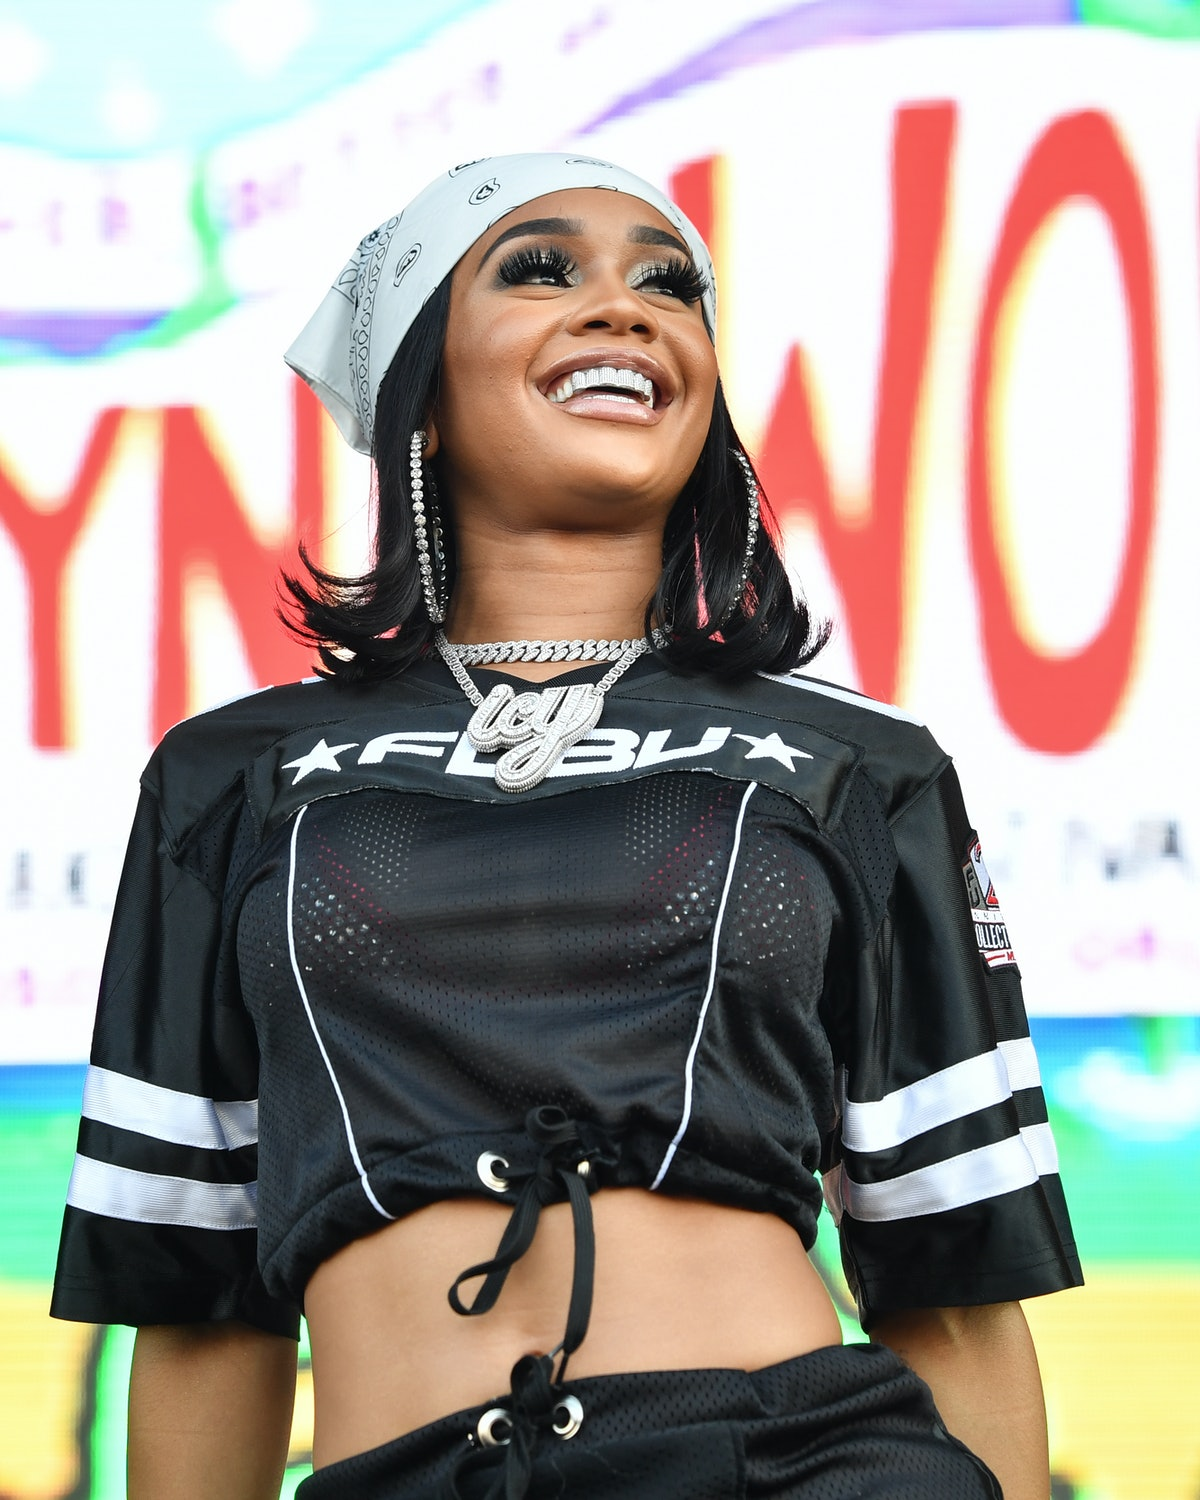 Saweetie performs with her hair cut into a short '70s flip haircut